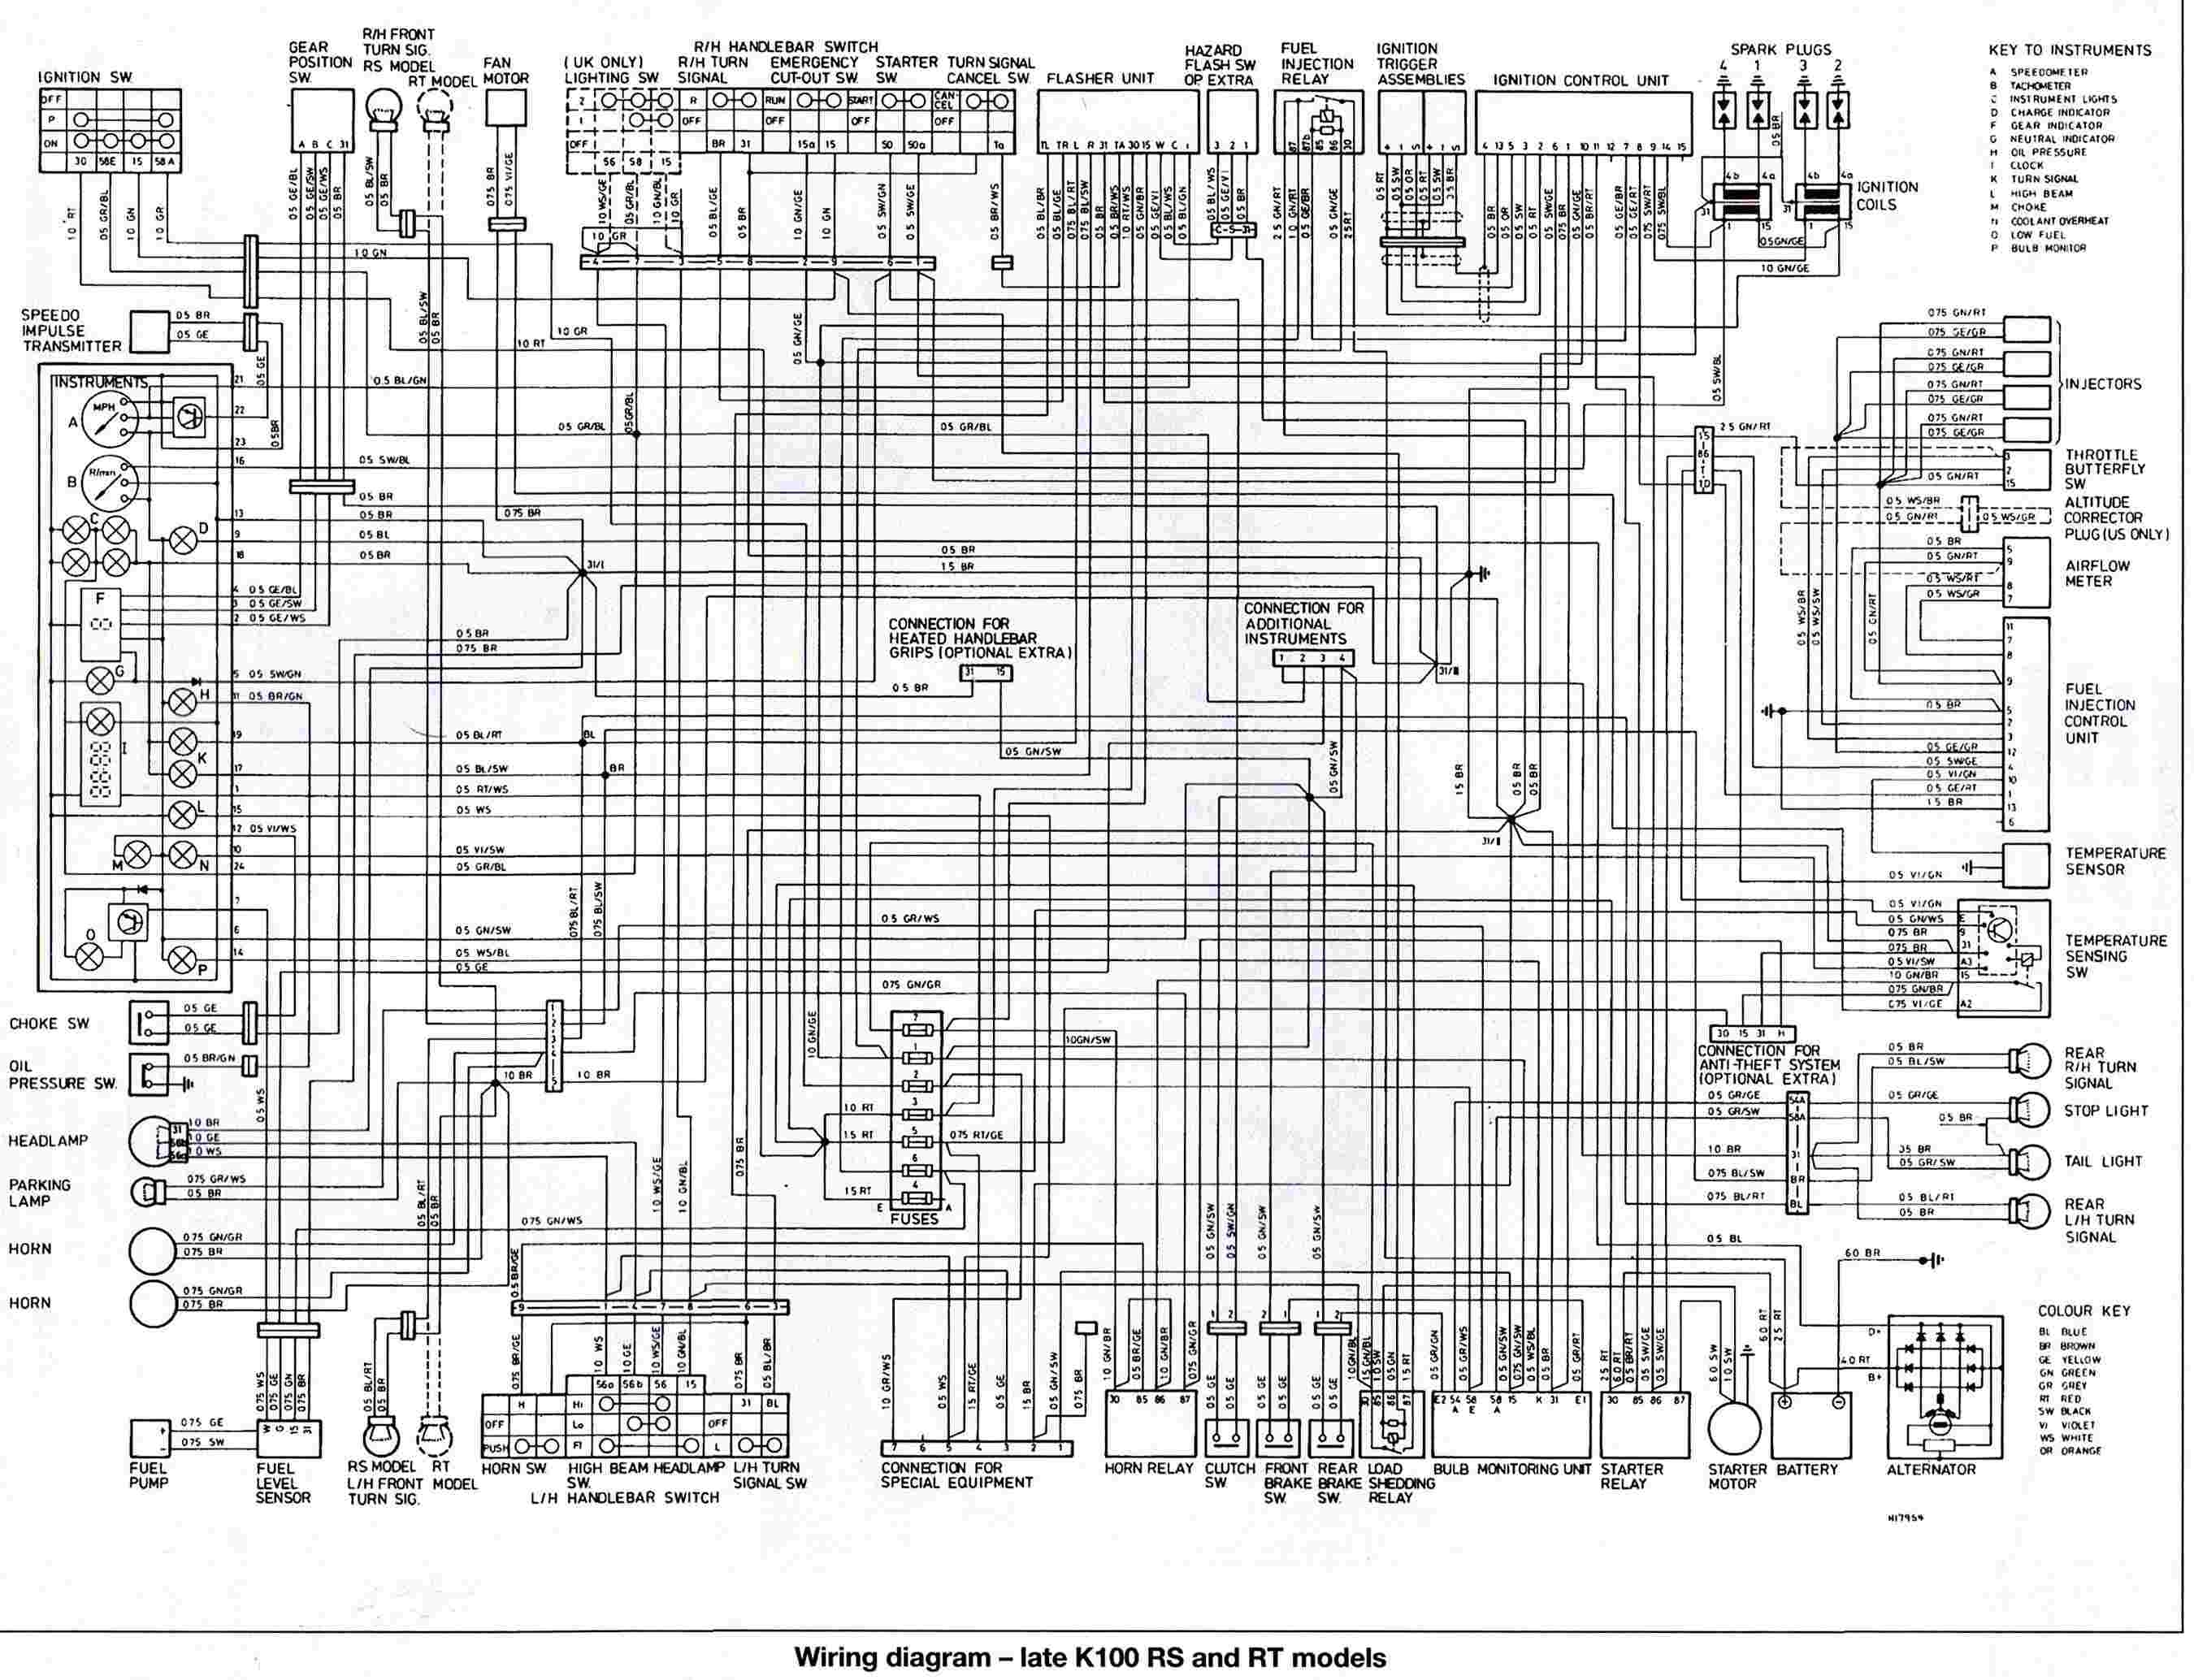 bmw wiring diagrams e39 schematics bmw wiring diagrams free free intended for bmw z4 wiring diagram bmw z3 wiring diagram radio wiring diagram shrutiradio BMW Z4 Wiring-Diagram 1993 at edmiracle.co